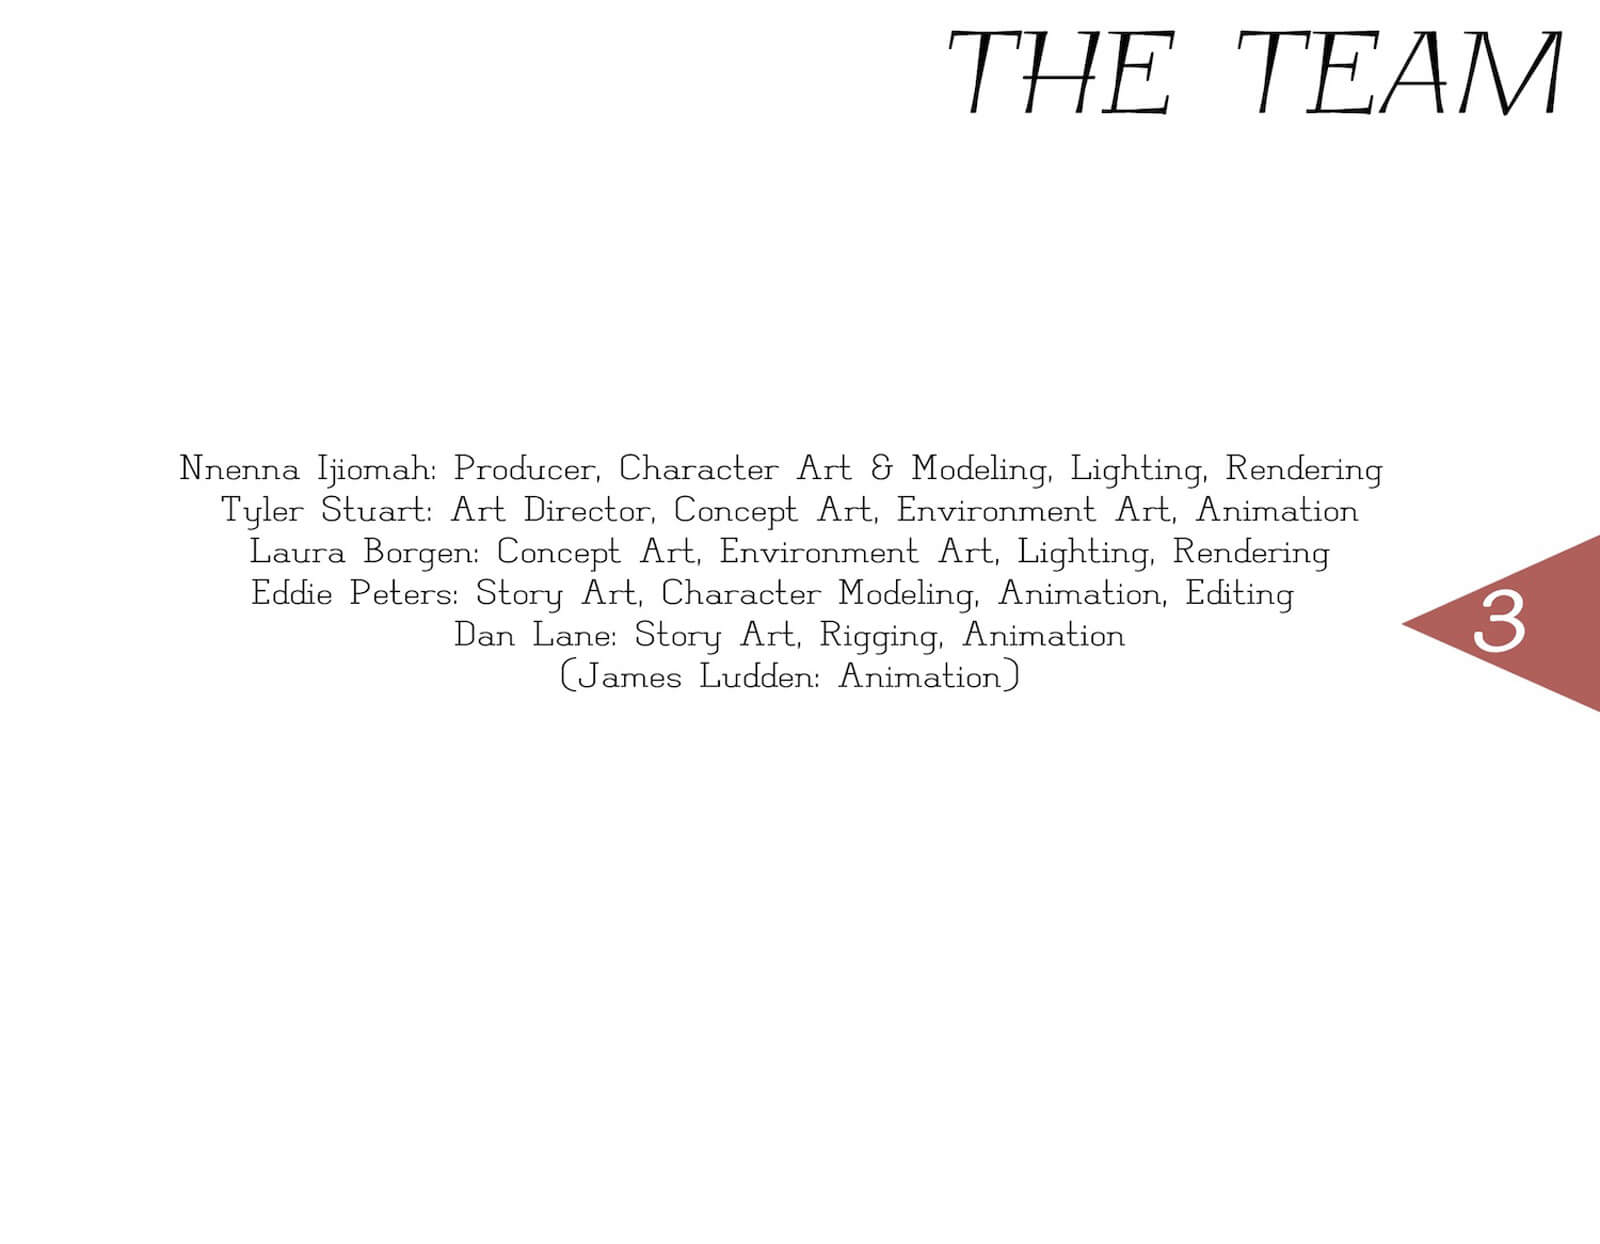 Additional credits slide for the film Super Secret in black font on a white background